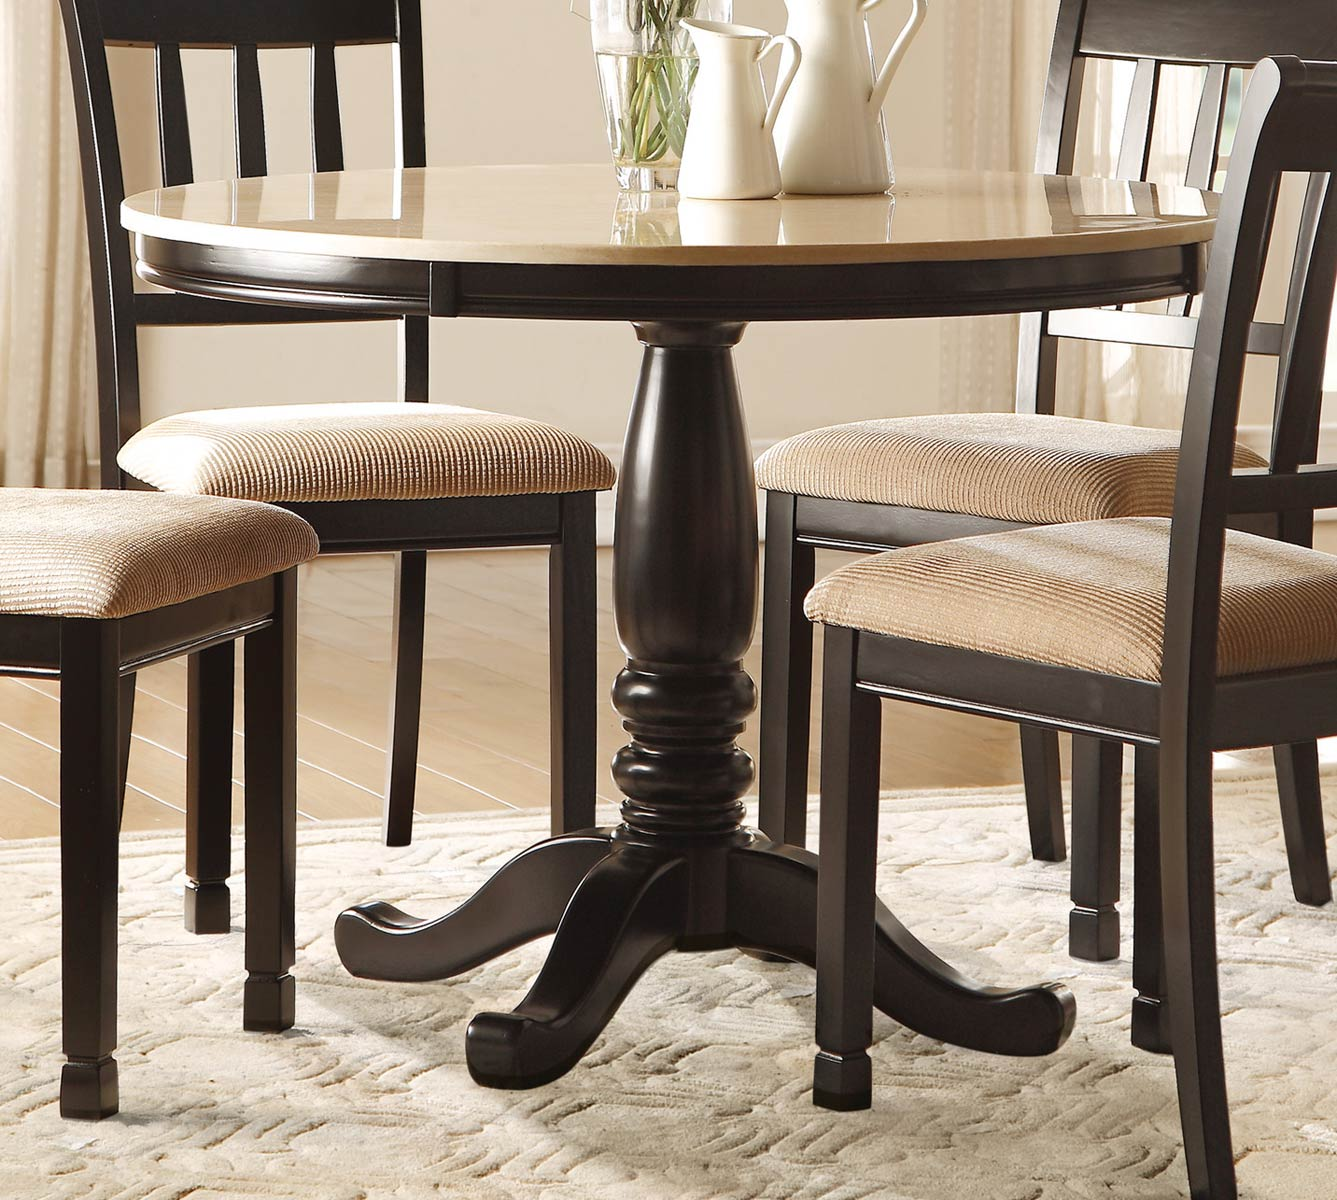 Homelegance Dearborn Round Dining Table - Faux Marble Top - Black/Cream